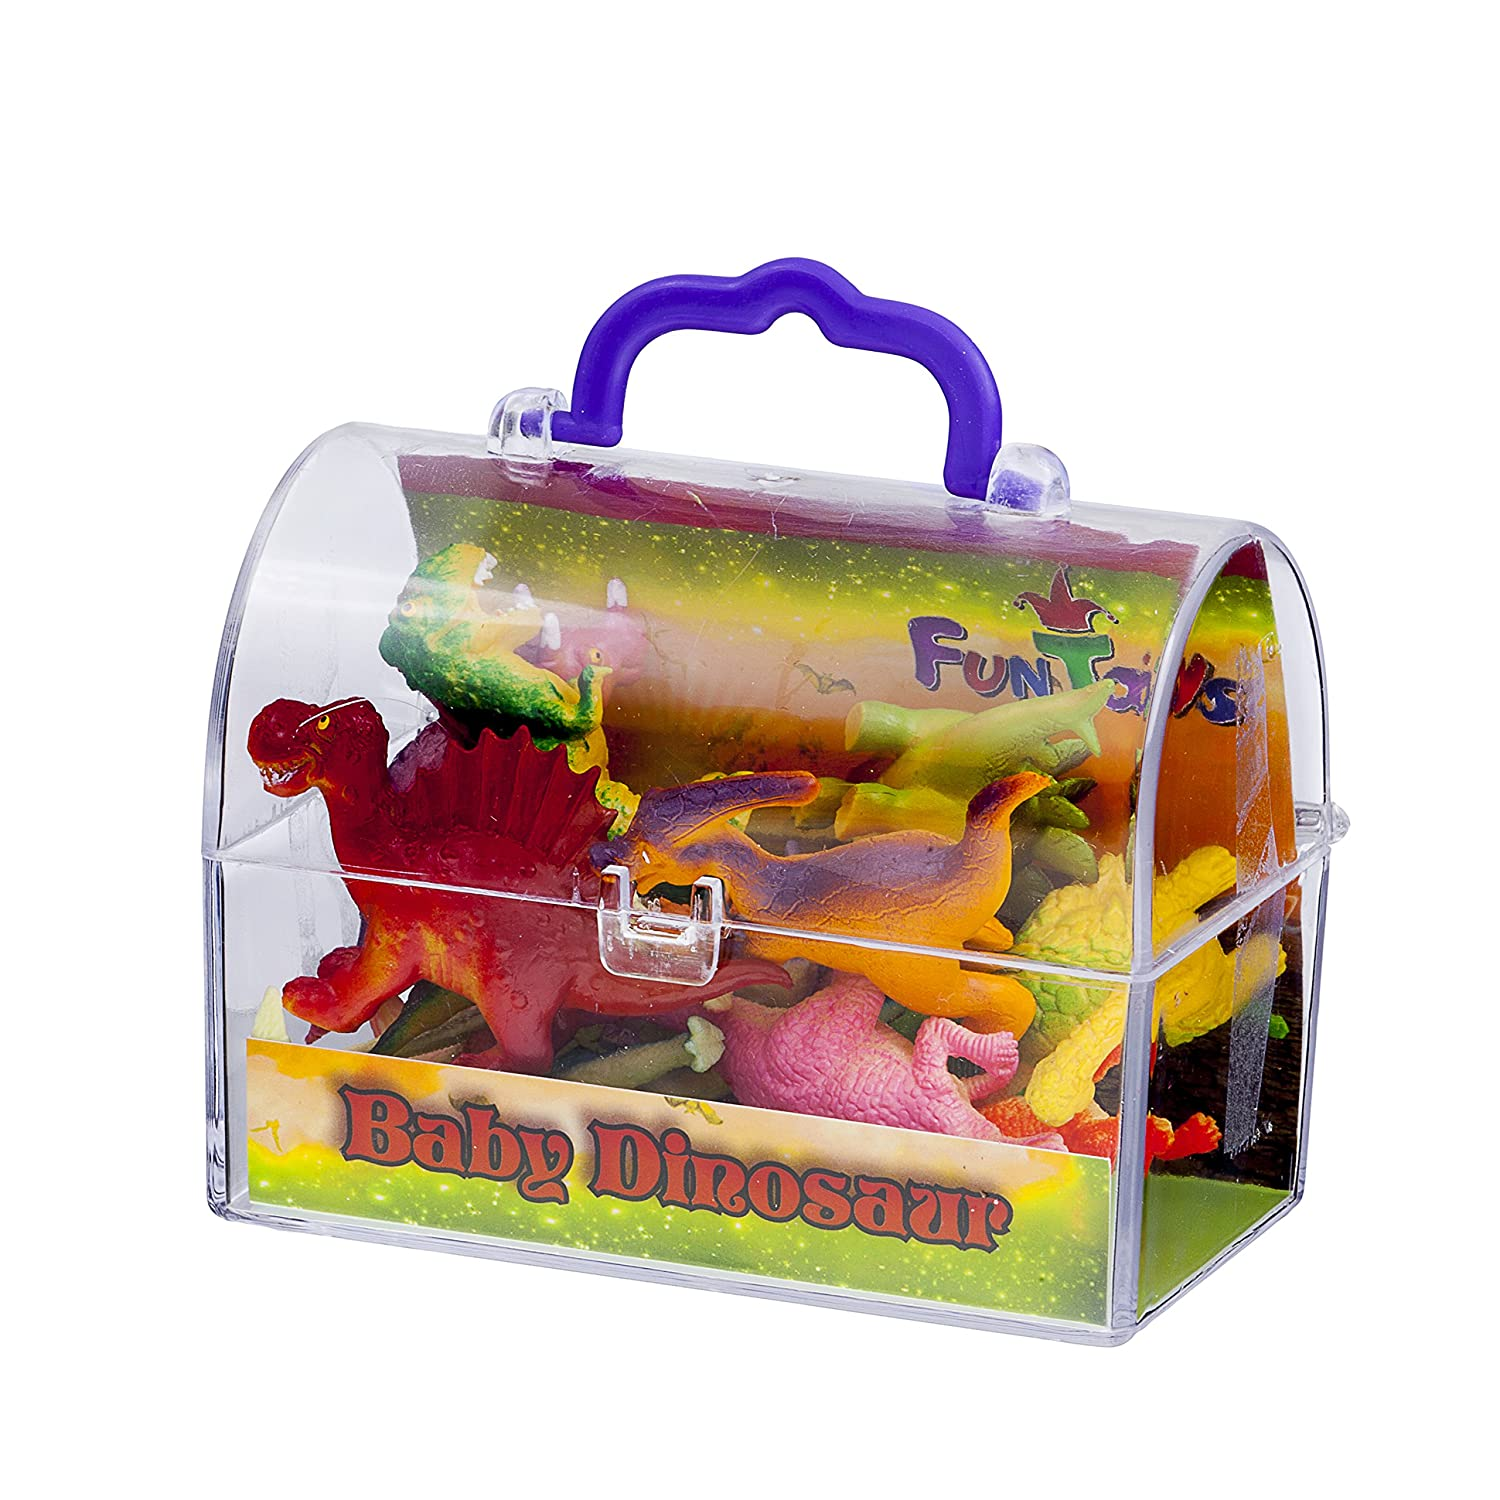 baby-dinosaur-set-of-10-with-nice-box